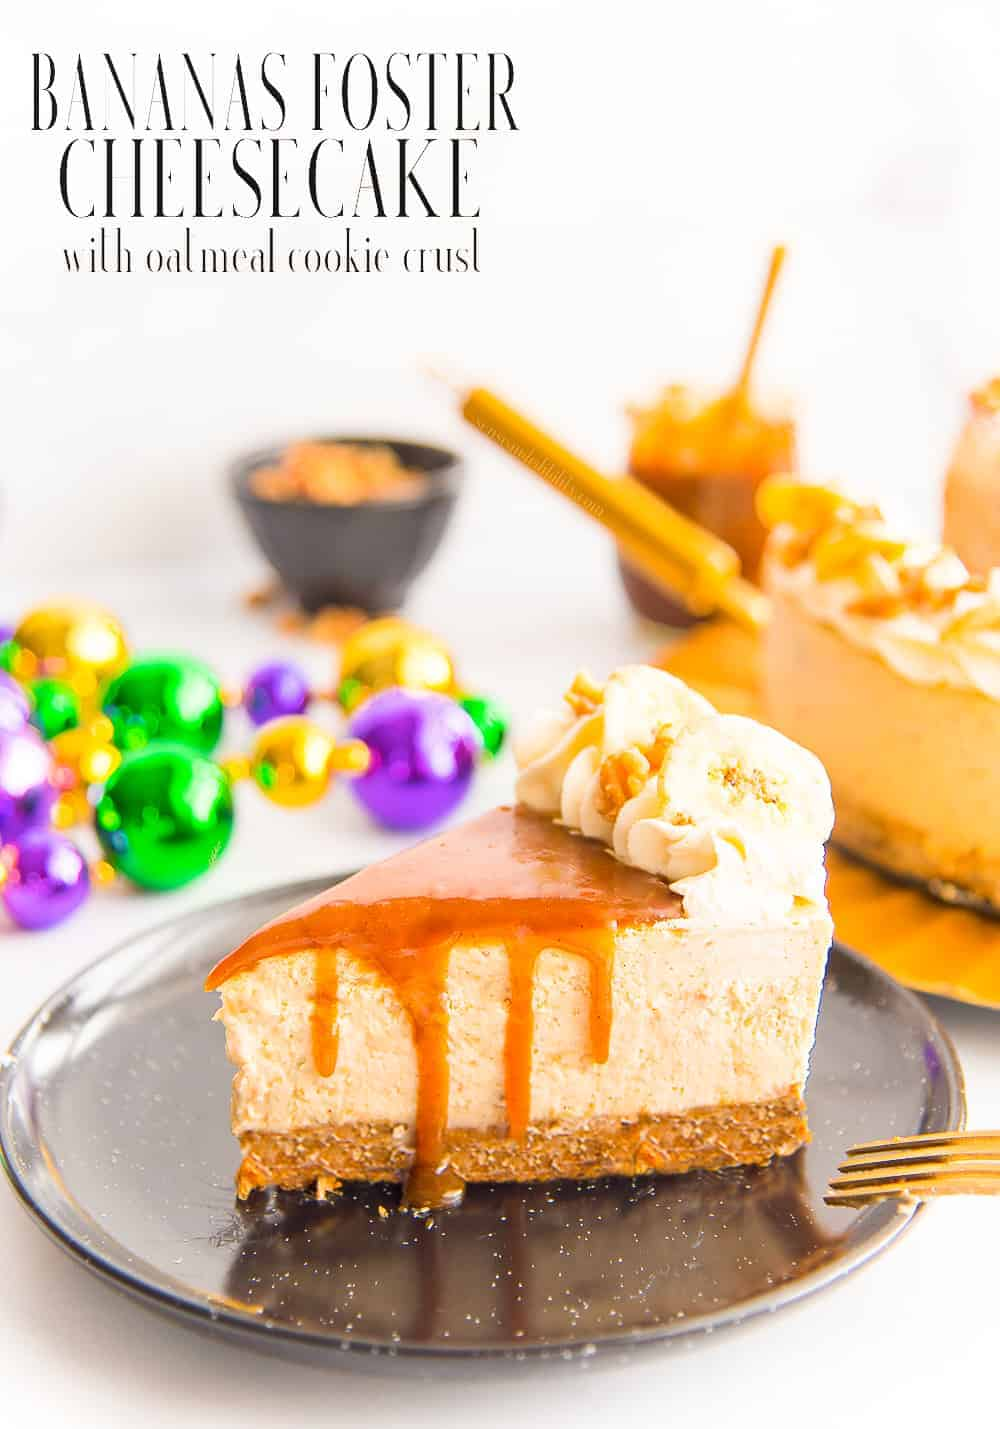 Take it back to NOLA this Mardi Gras with a thick, creamy Bananas Foster Cheesecake. It's made with a buttery oatmeal cookie crust and drizzled with the infamous rum caramel sauce. #bananasfoster #cheesecake #bananasfostercheesecake #baking #cake #mardigrasdessert #dessertsformardigras #NewOrleansdessert #oatmealcookie #bananacheesecake #rumcaramel #caramelsauce via @ediblesense